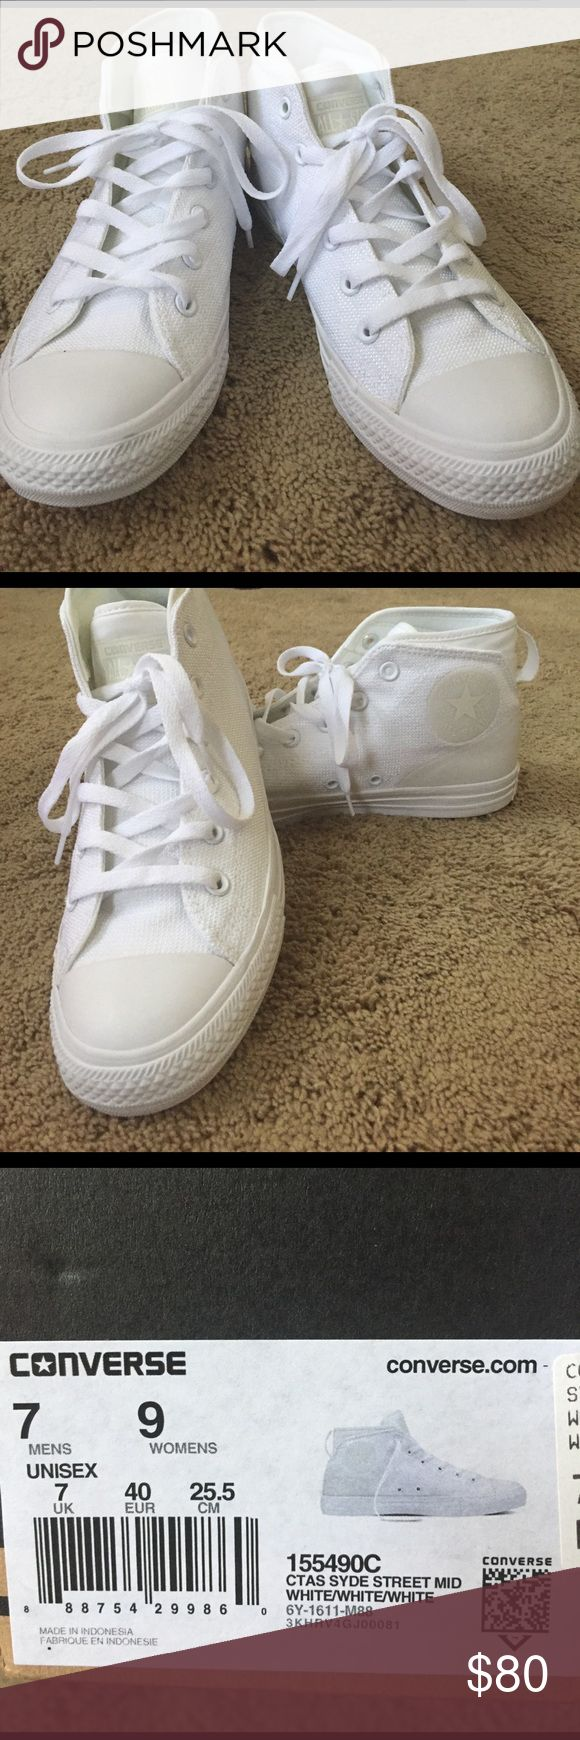 All white Chuck Taylor's Stylish comfortable white Chucks! Only worn Once size 7 men 9 women's Converse Shoes Sneakers